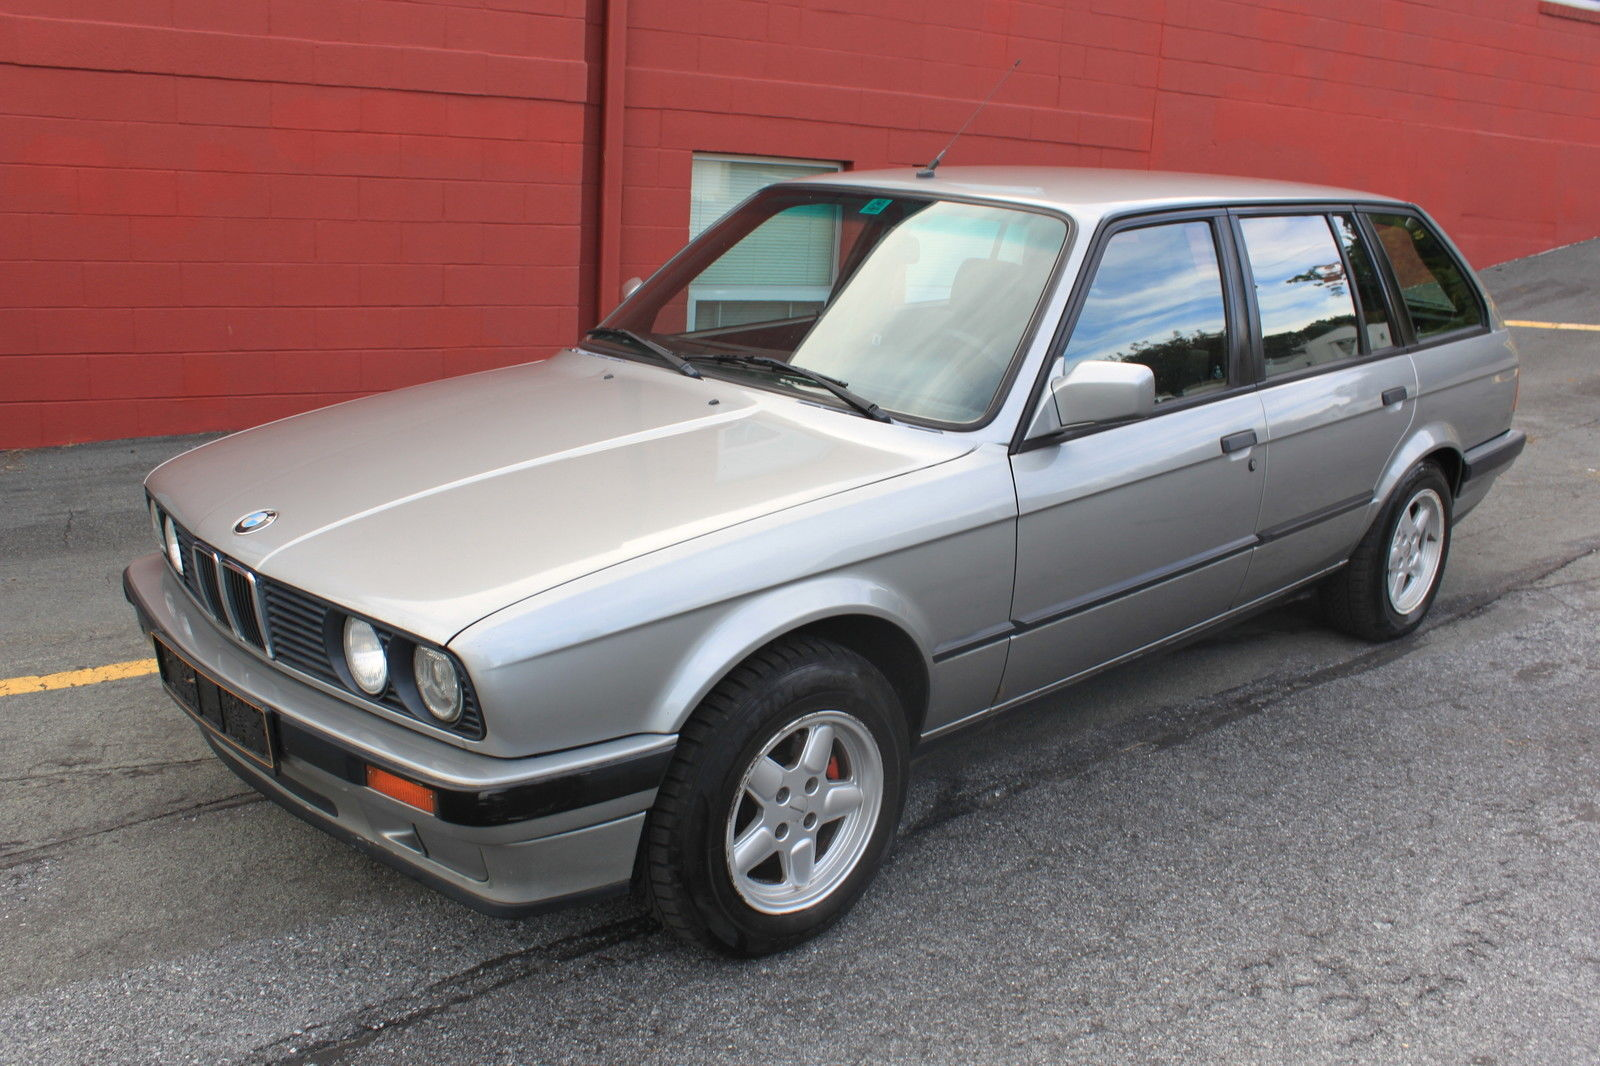 hight resolution of bmw e30 wagon 318i touring manual 5 speed 318is 325is 320i 325i 325e m3